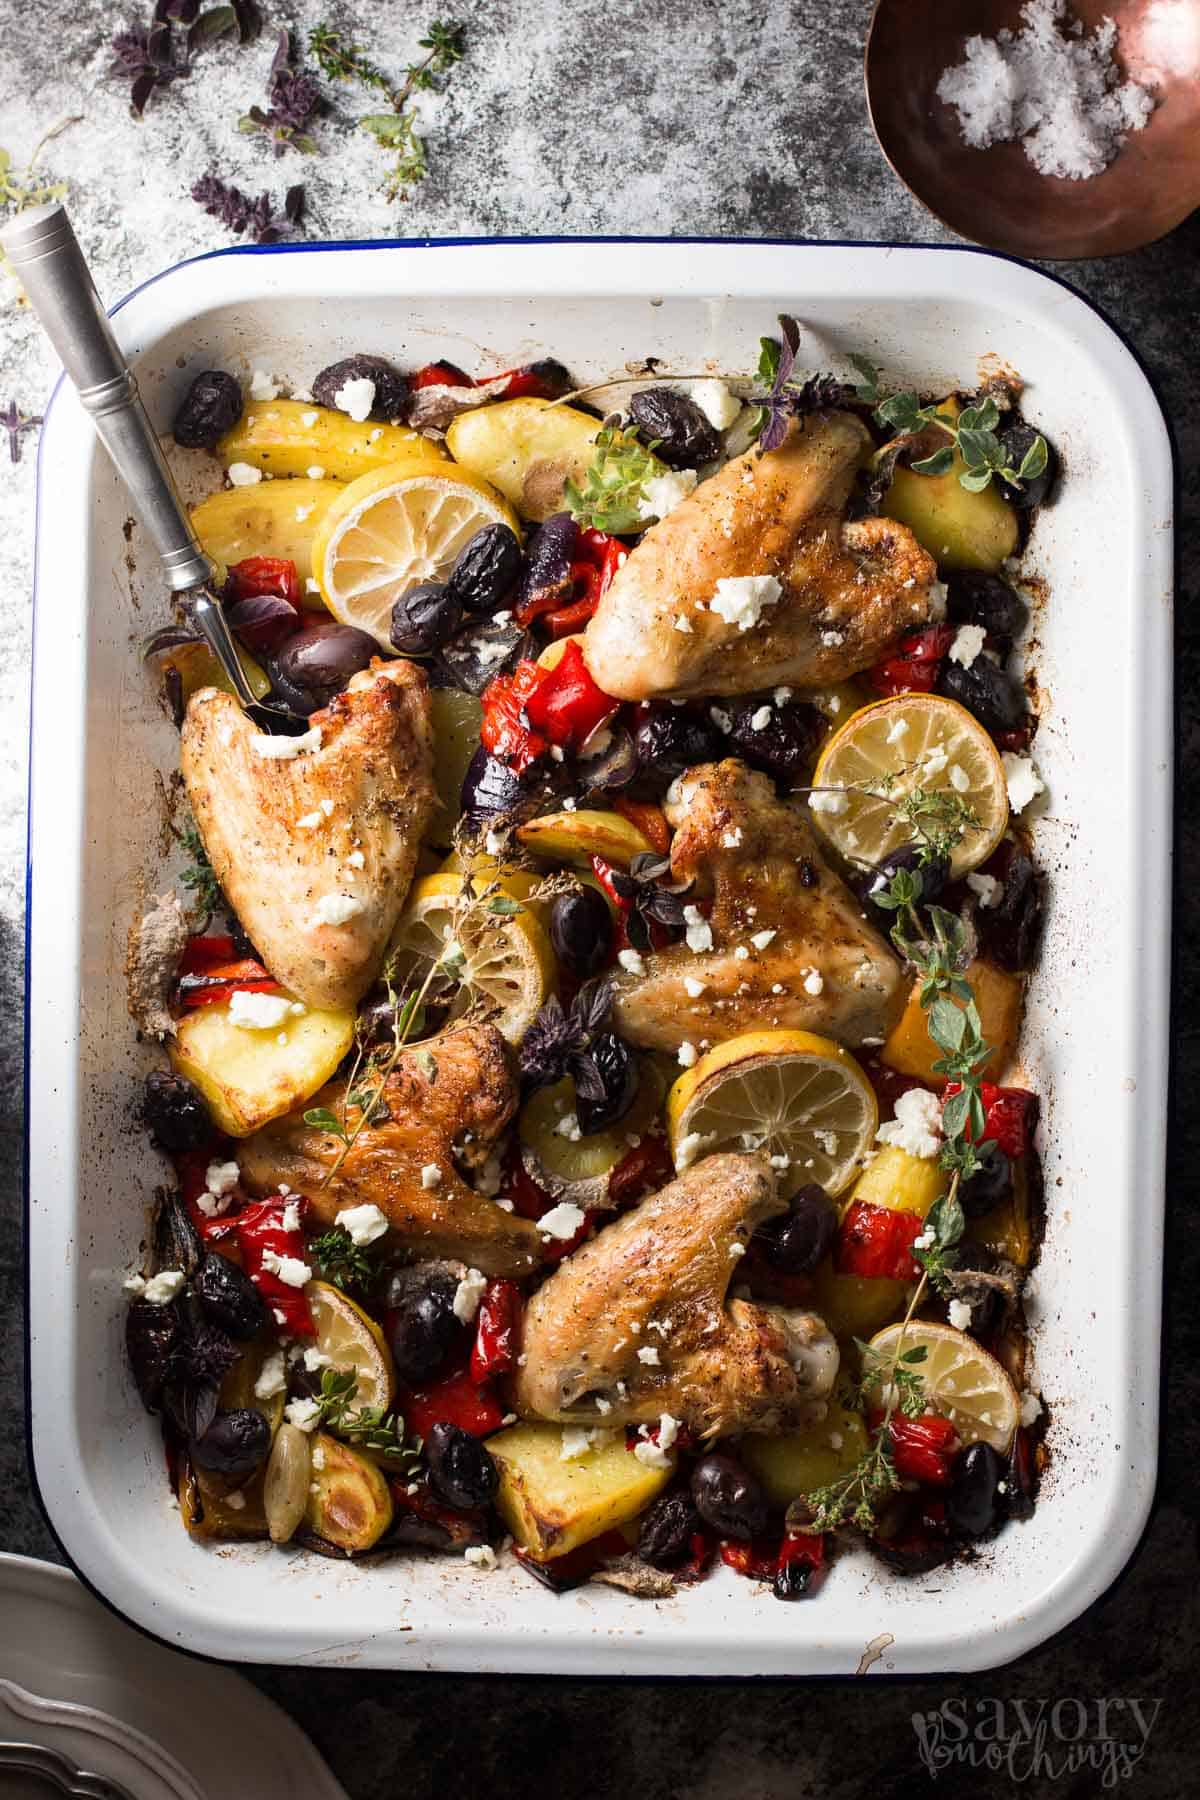 This One Sheet Pan Greek Style Easy Baked Chicken Dinner will save you at dinner time! You can throw everything onto your sheet pan and let it bake into a delicious dinner. The sauce that forms is so good! | savorynothings.com